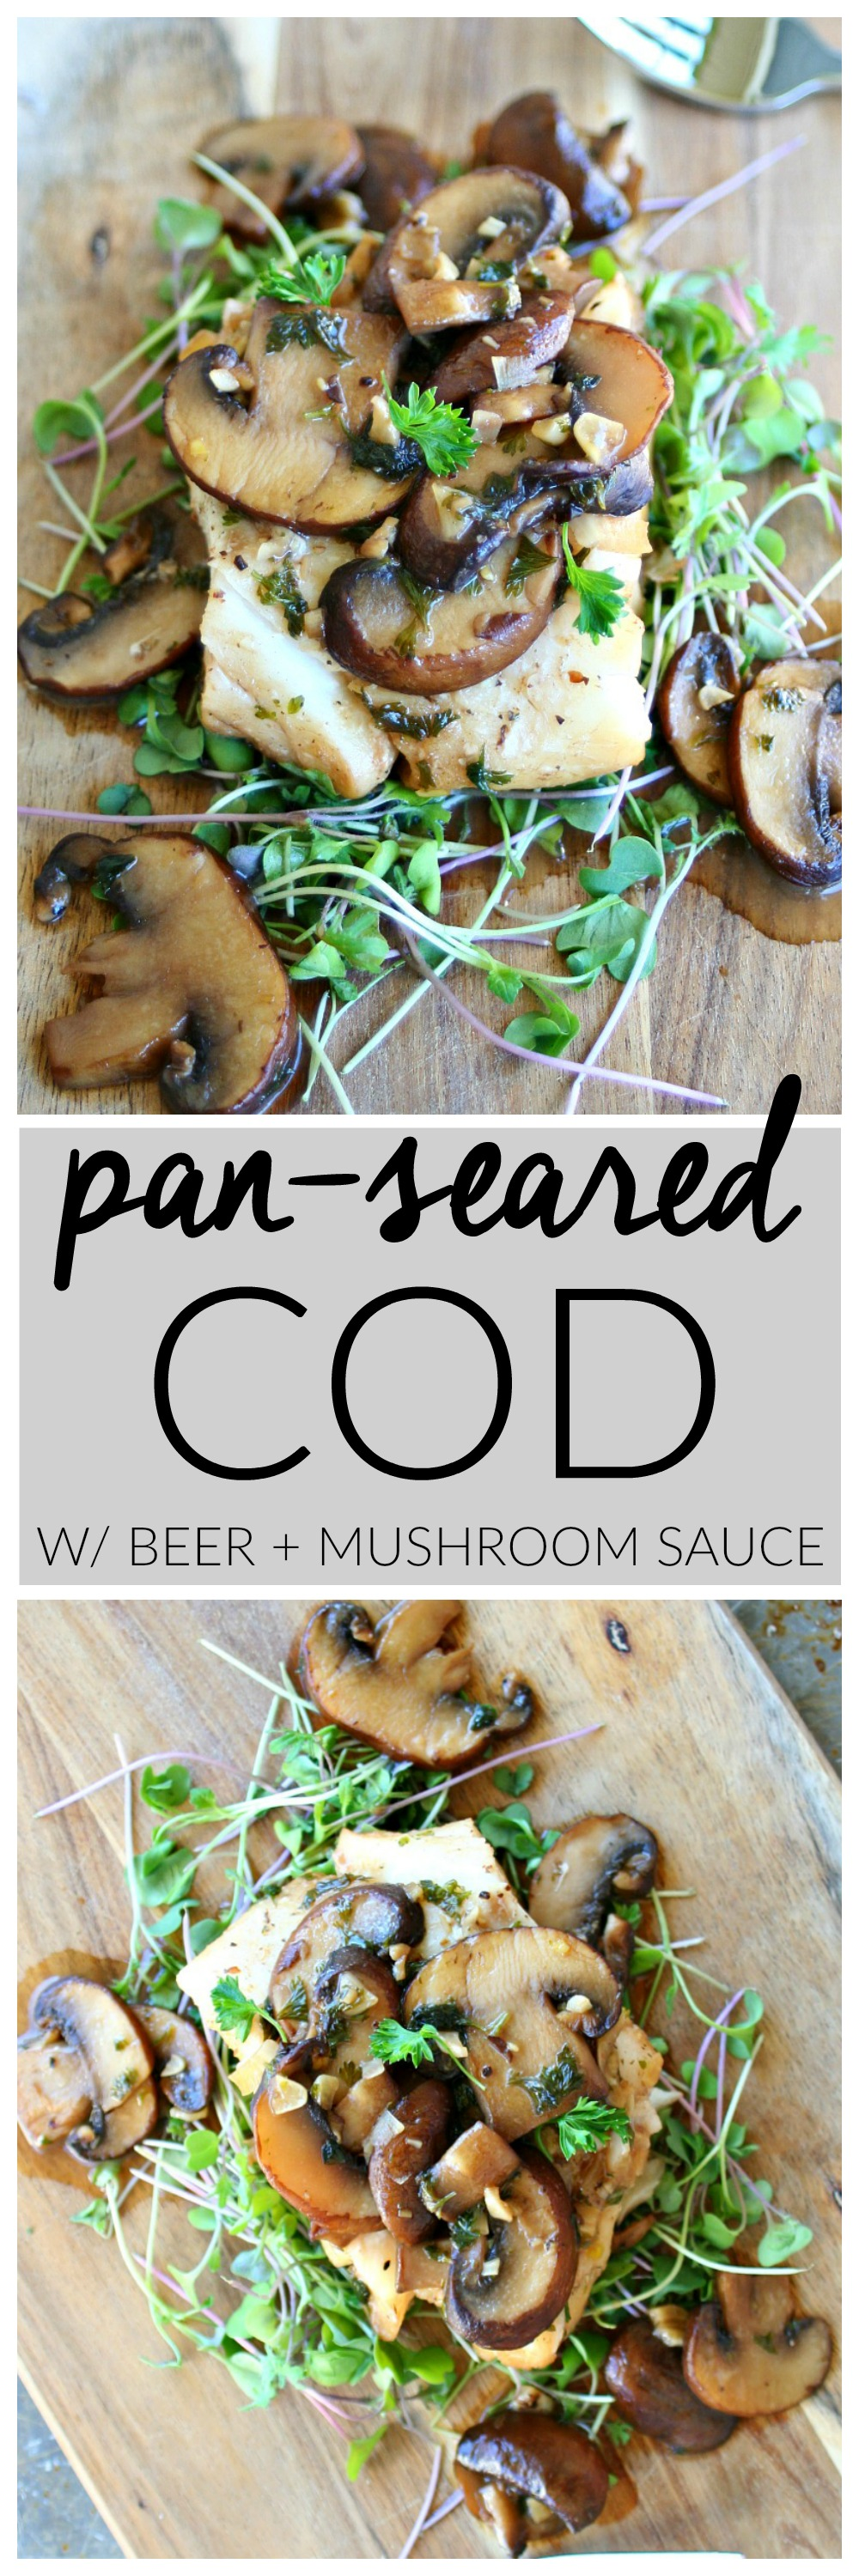 Pan-Seared Cod With Beer and Mushroom Sauce | Killing Thyme